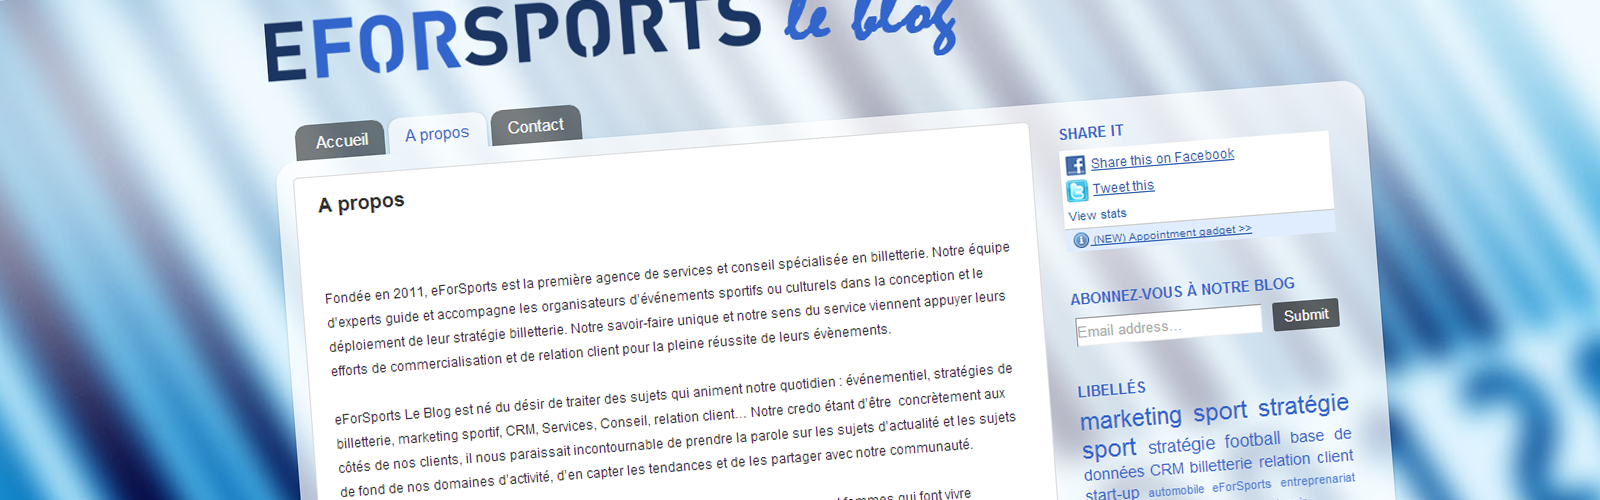 eForsport-blog